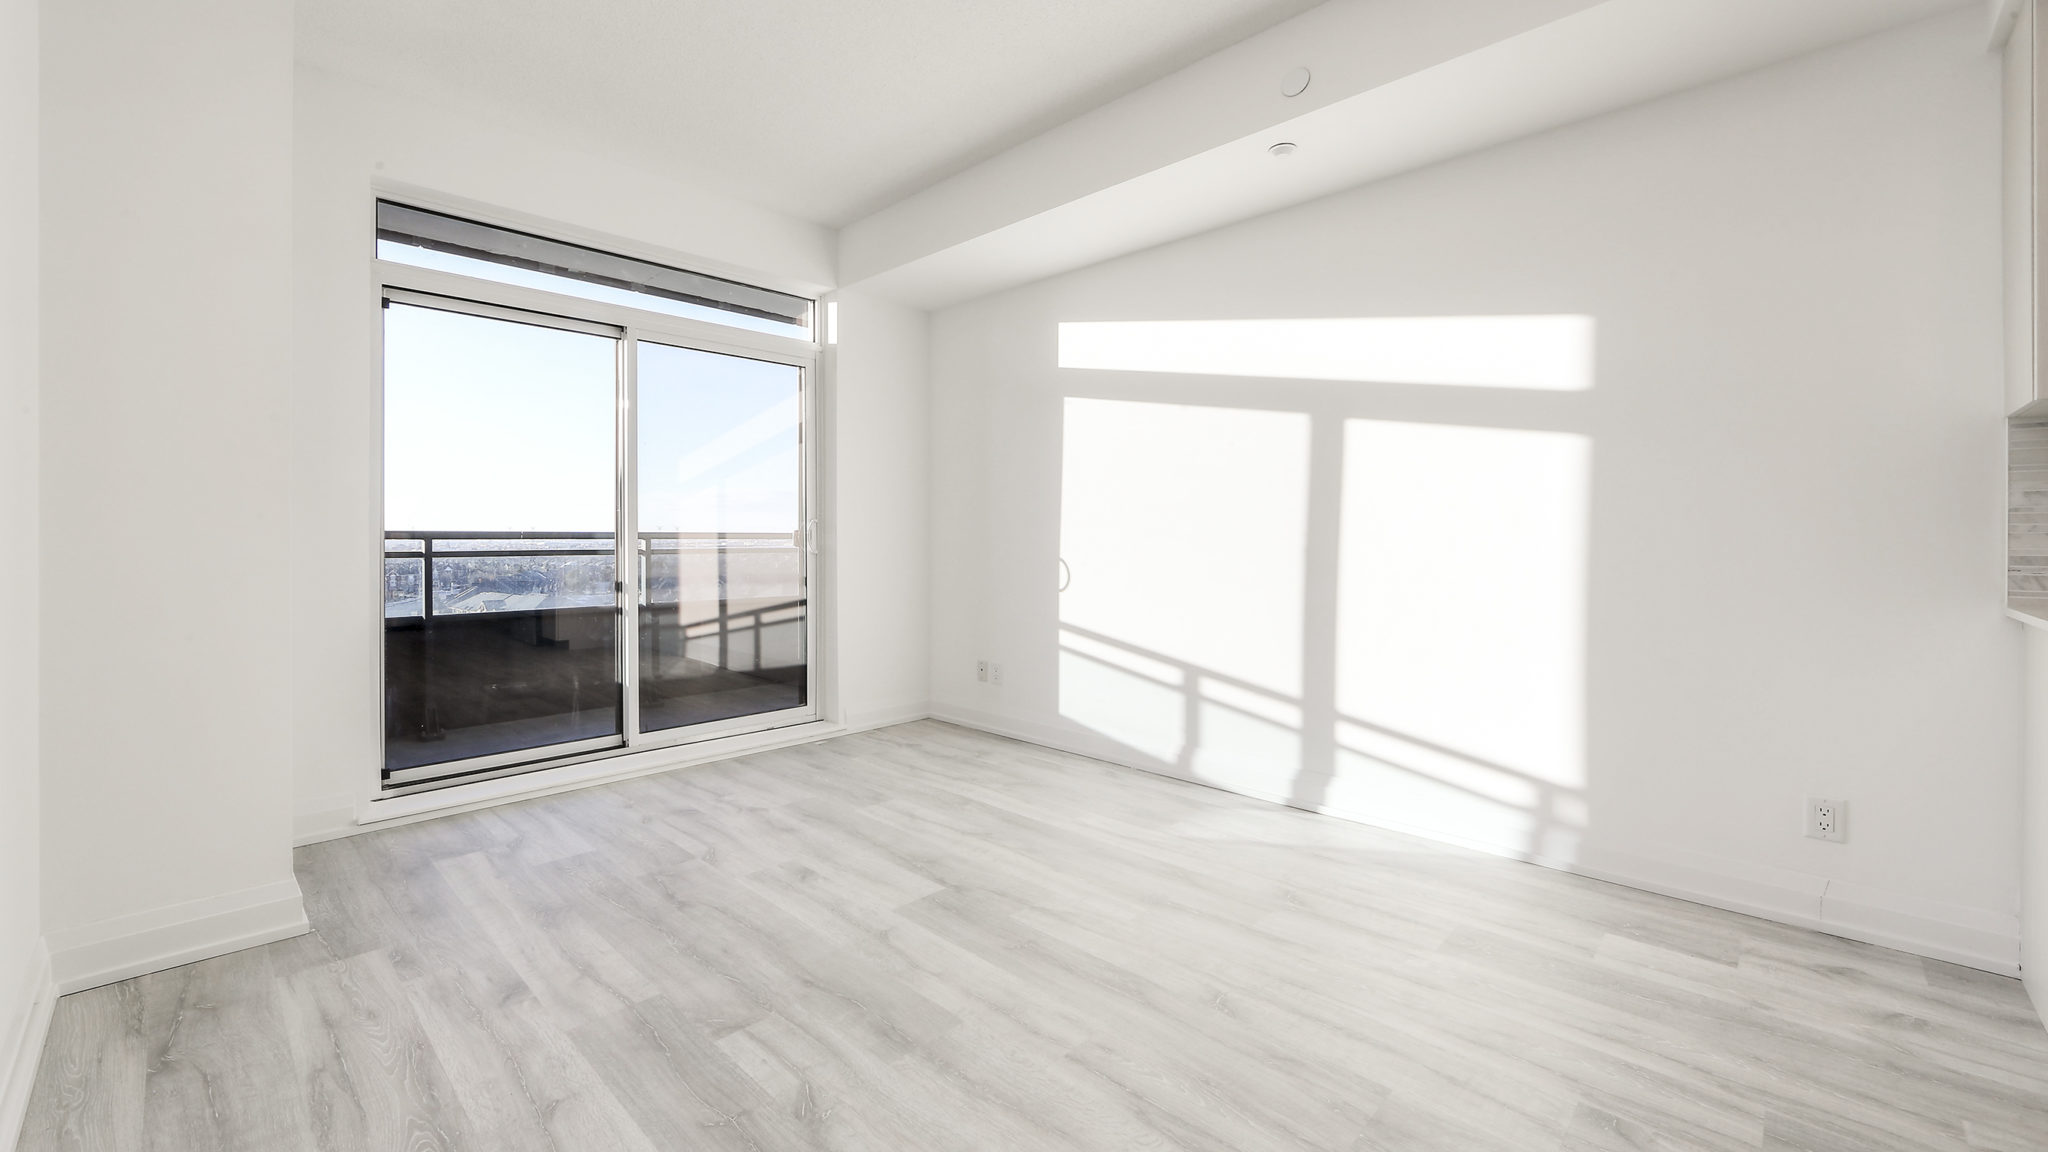 Picture of living room and glass doors. We also see so much sunlight pouring into the room.